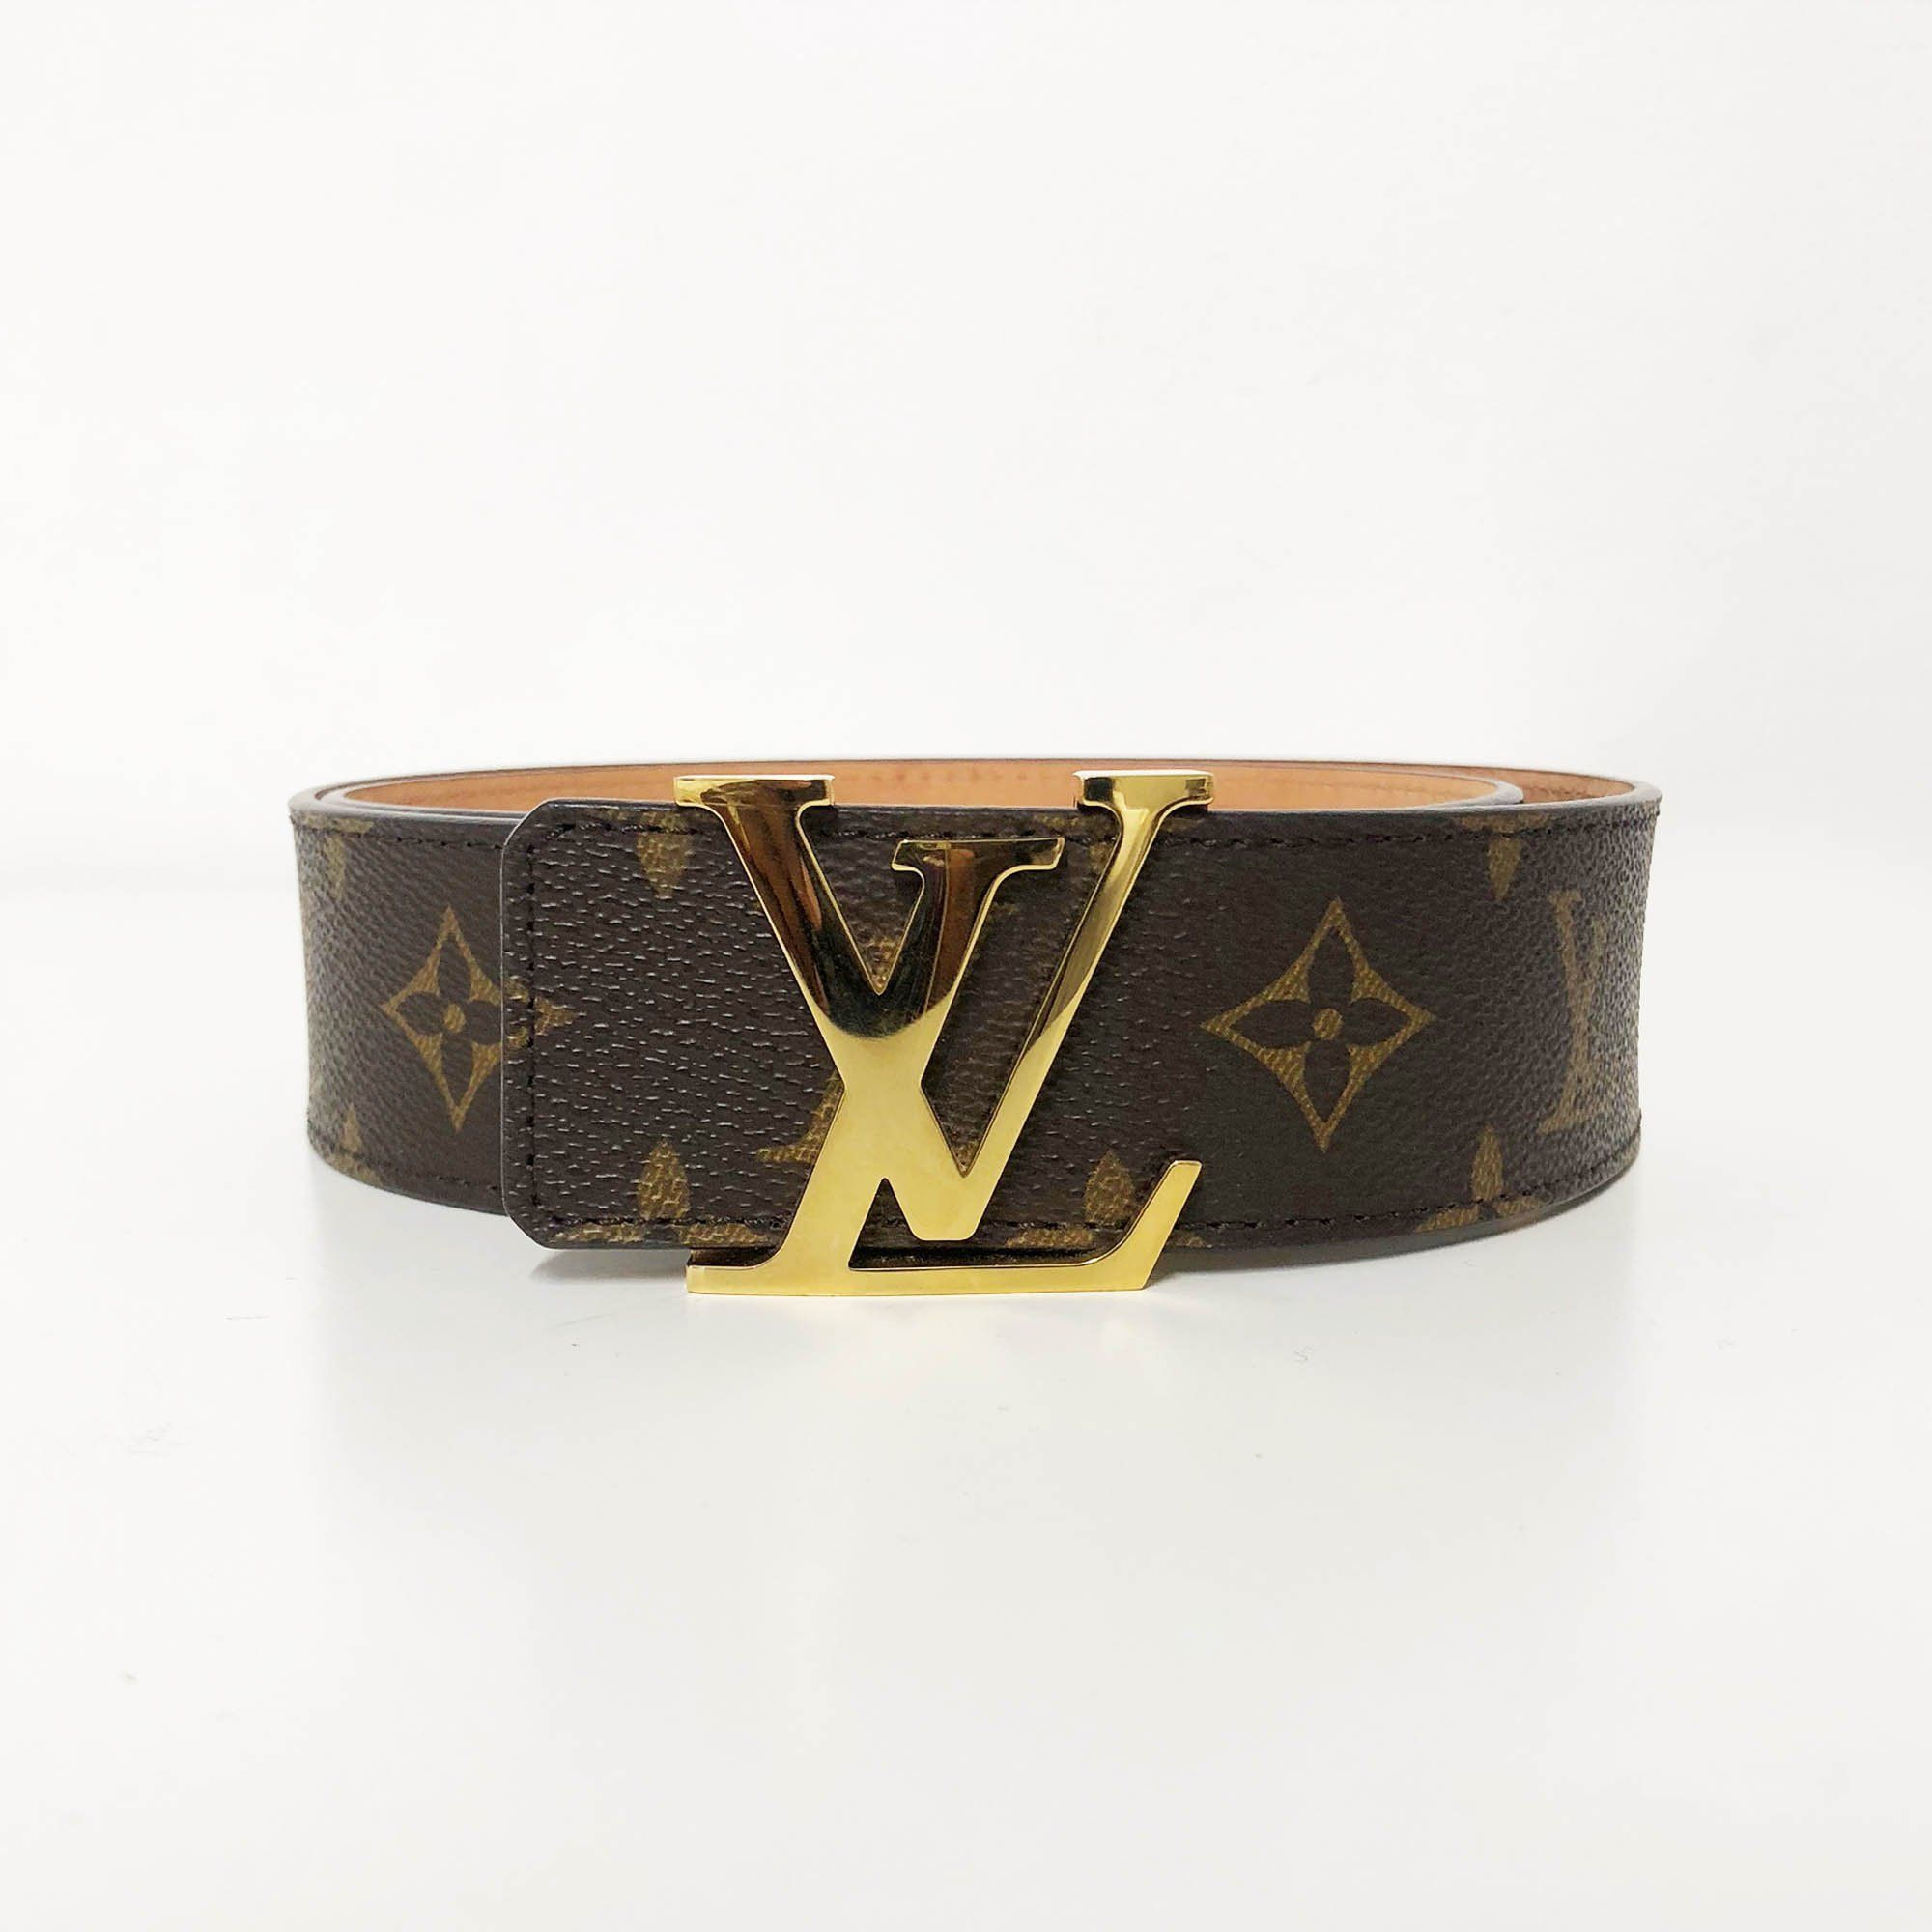 eaafe3f143dd Louis Vuitton Belts On Sale - Best Belt 2018